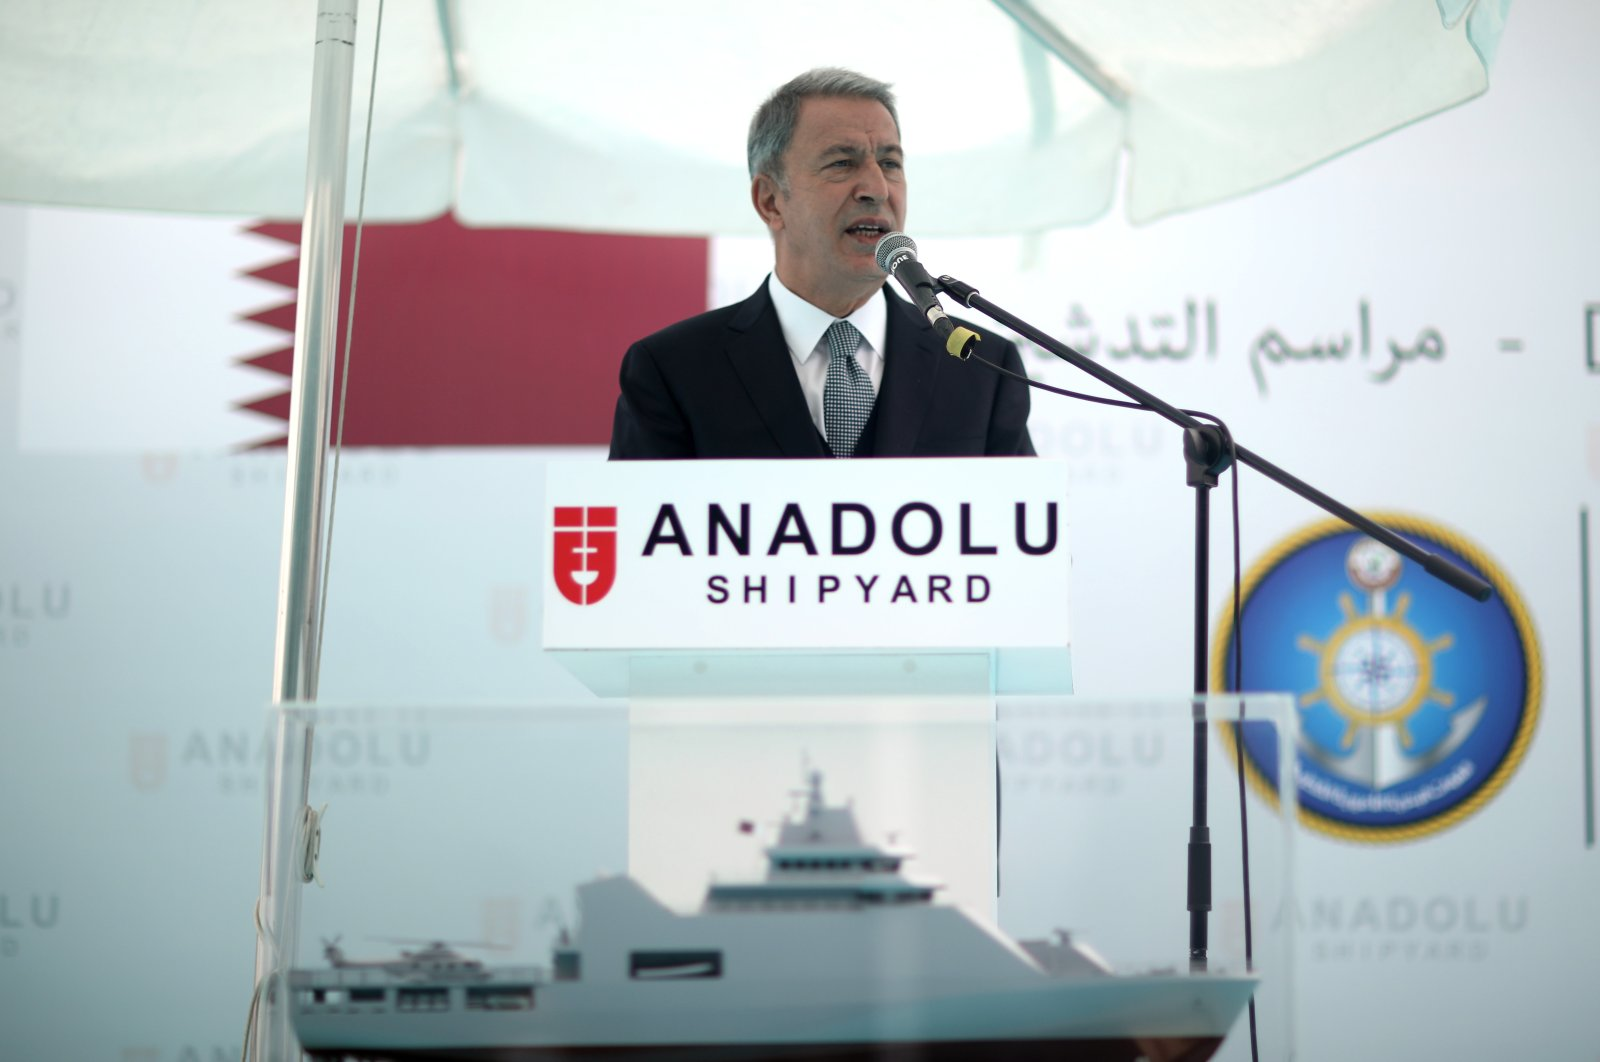 Defense Minister Hulusi Akar speaks at an event in Istanbul, Turkey, Oct. 8, 2020. (AA Photo)